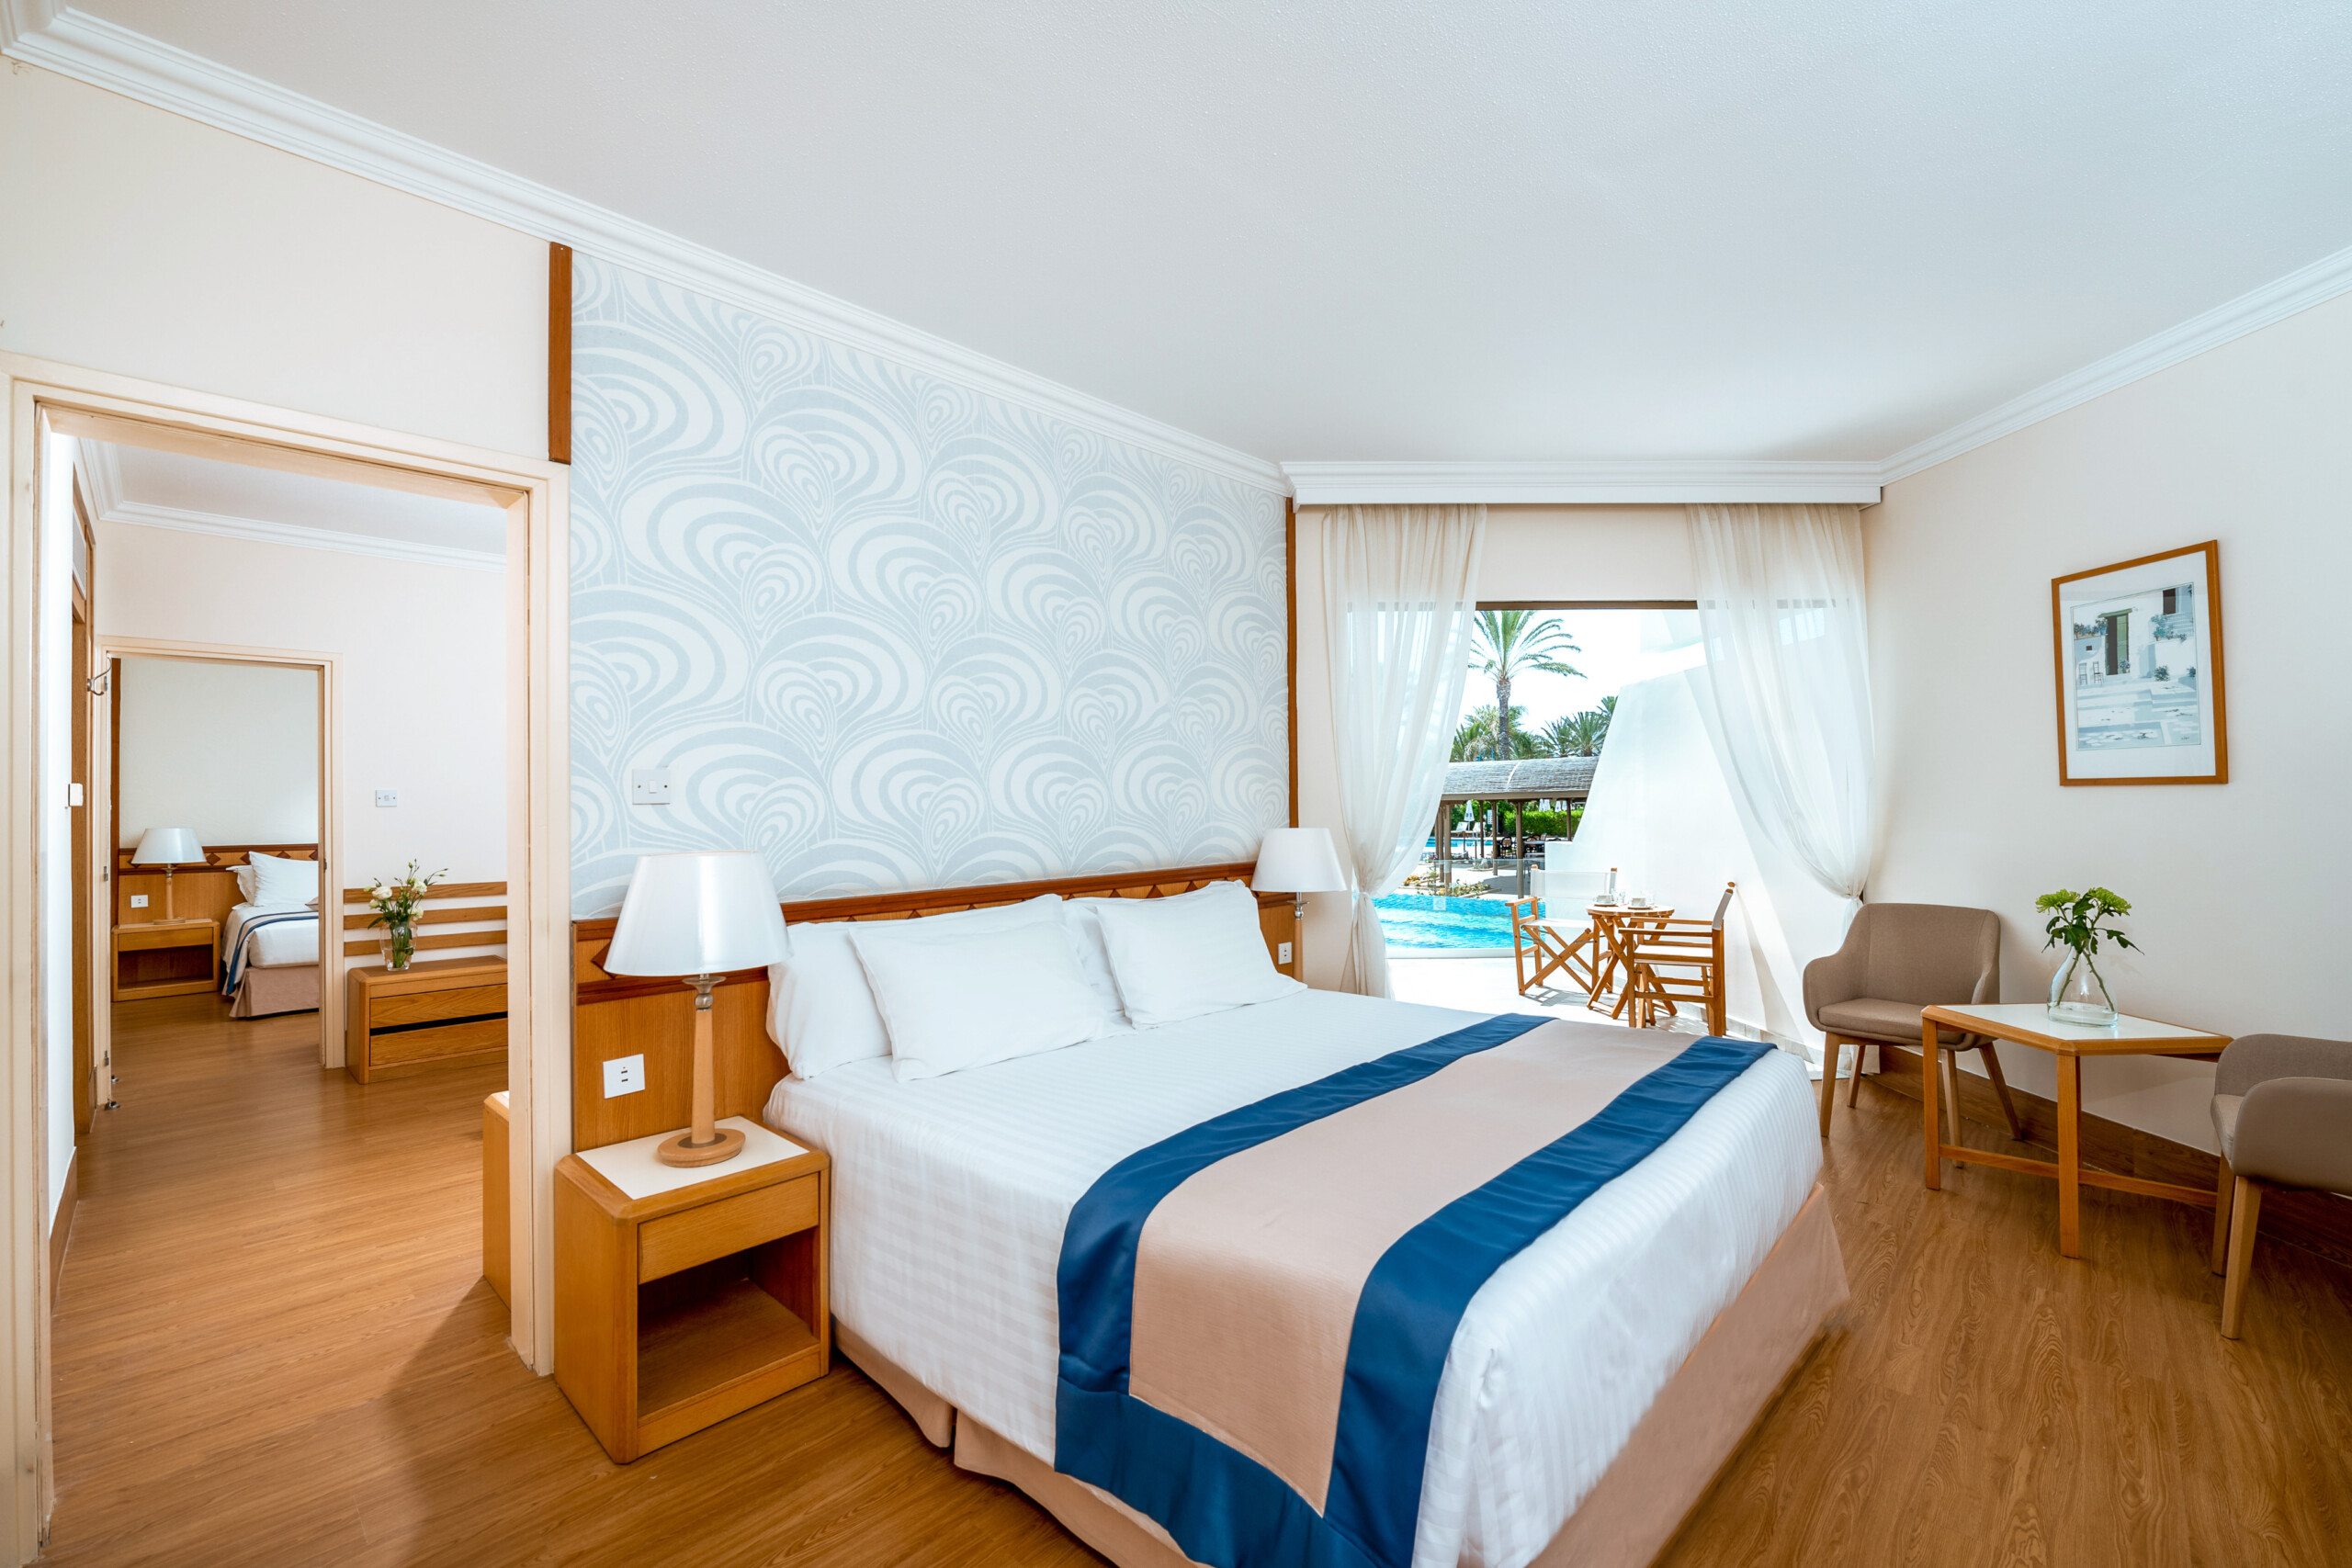 46 ATHENA BEACH HOTEL FAMILY SUPERIOR INTERCONNECTING AND TRIPLE INTERCONECTING SWIM-UP ROOM